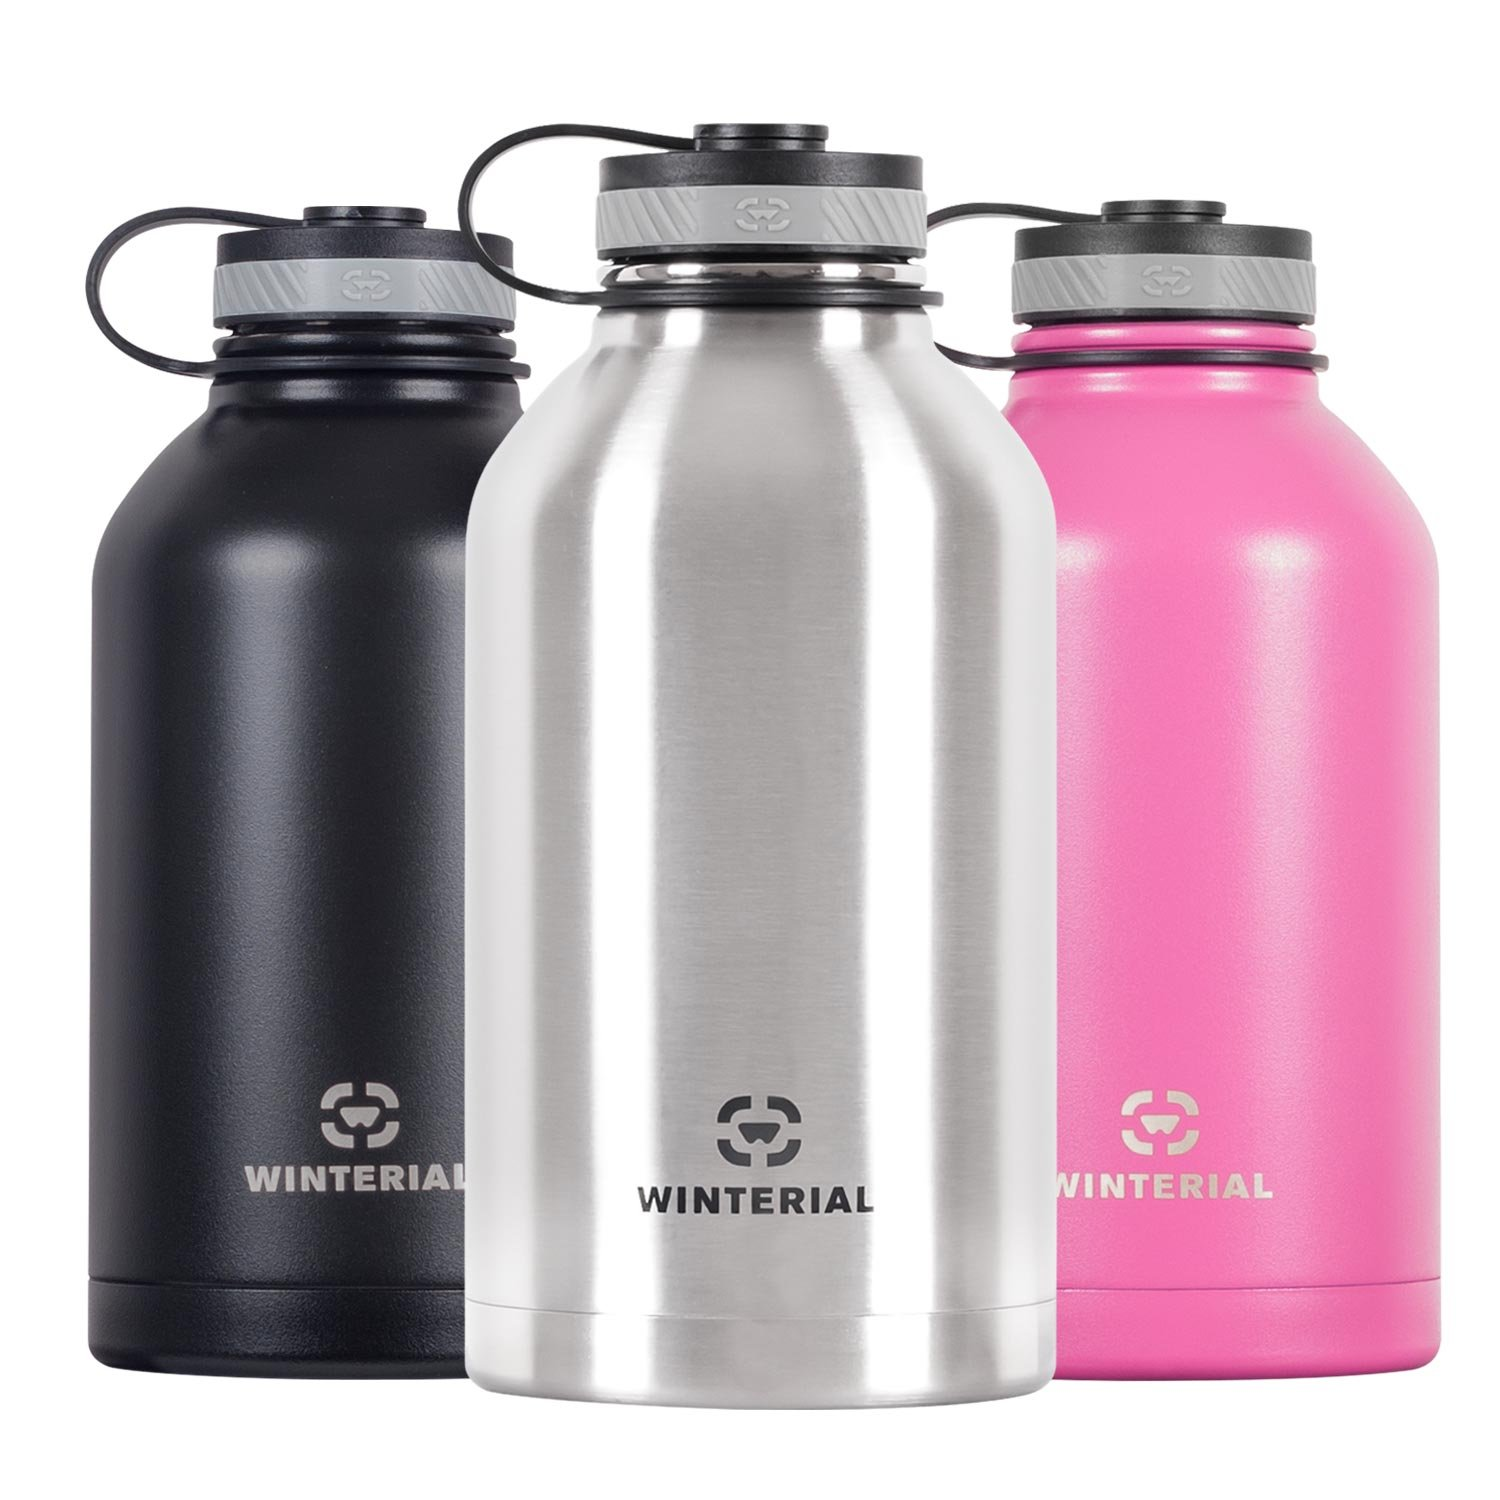 Winterial 64 Oz Insulated Water Bottle Wide Mouth Beer Growler (Black)